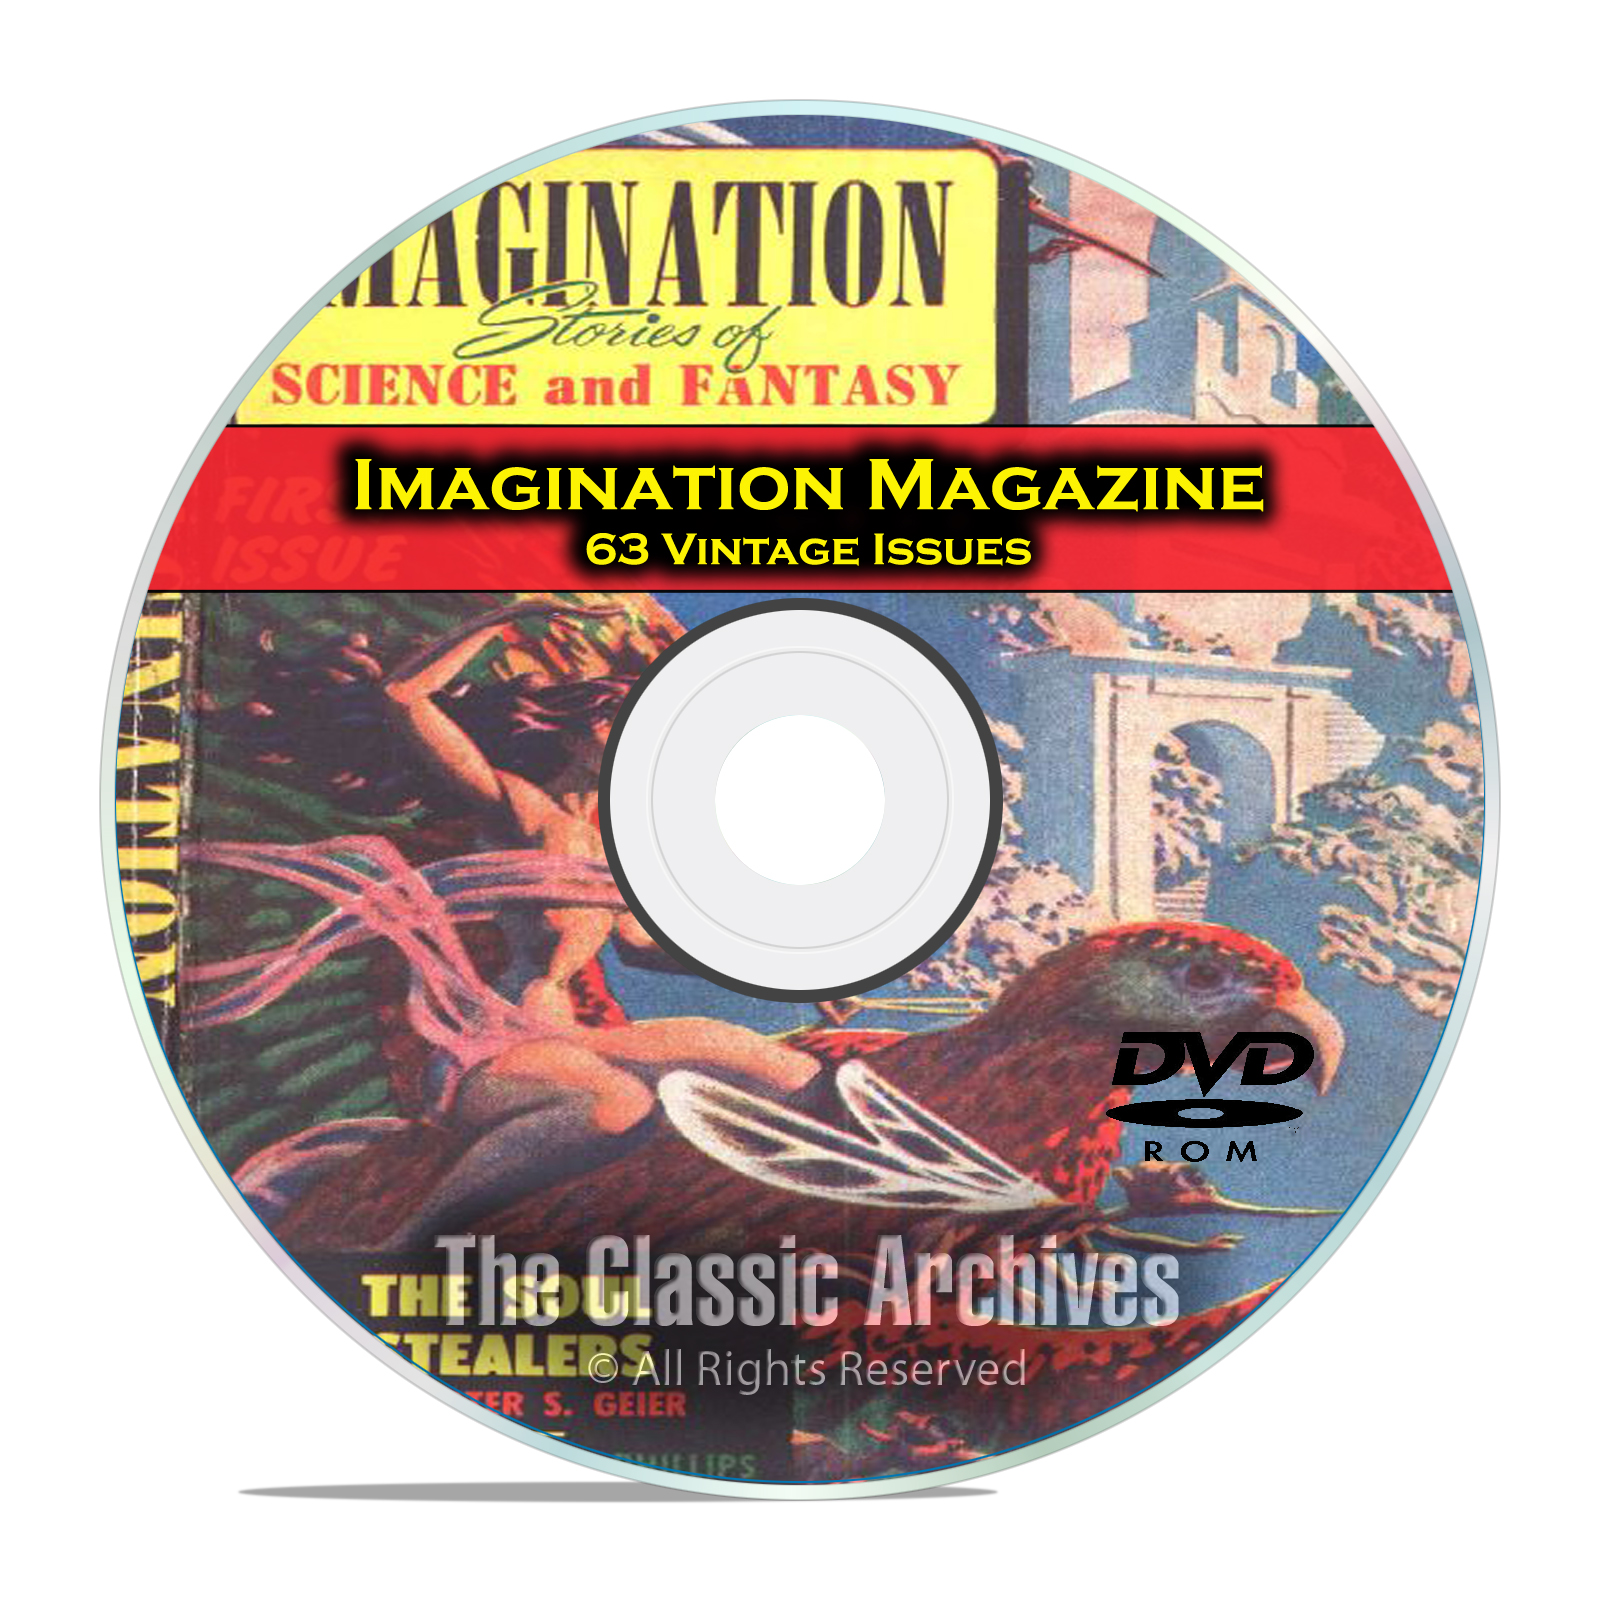 Imagination Magazine, 63 Vintage Pulp Magazine, Science Fiction DVD